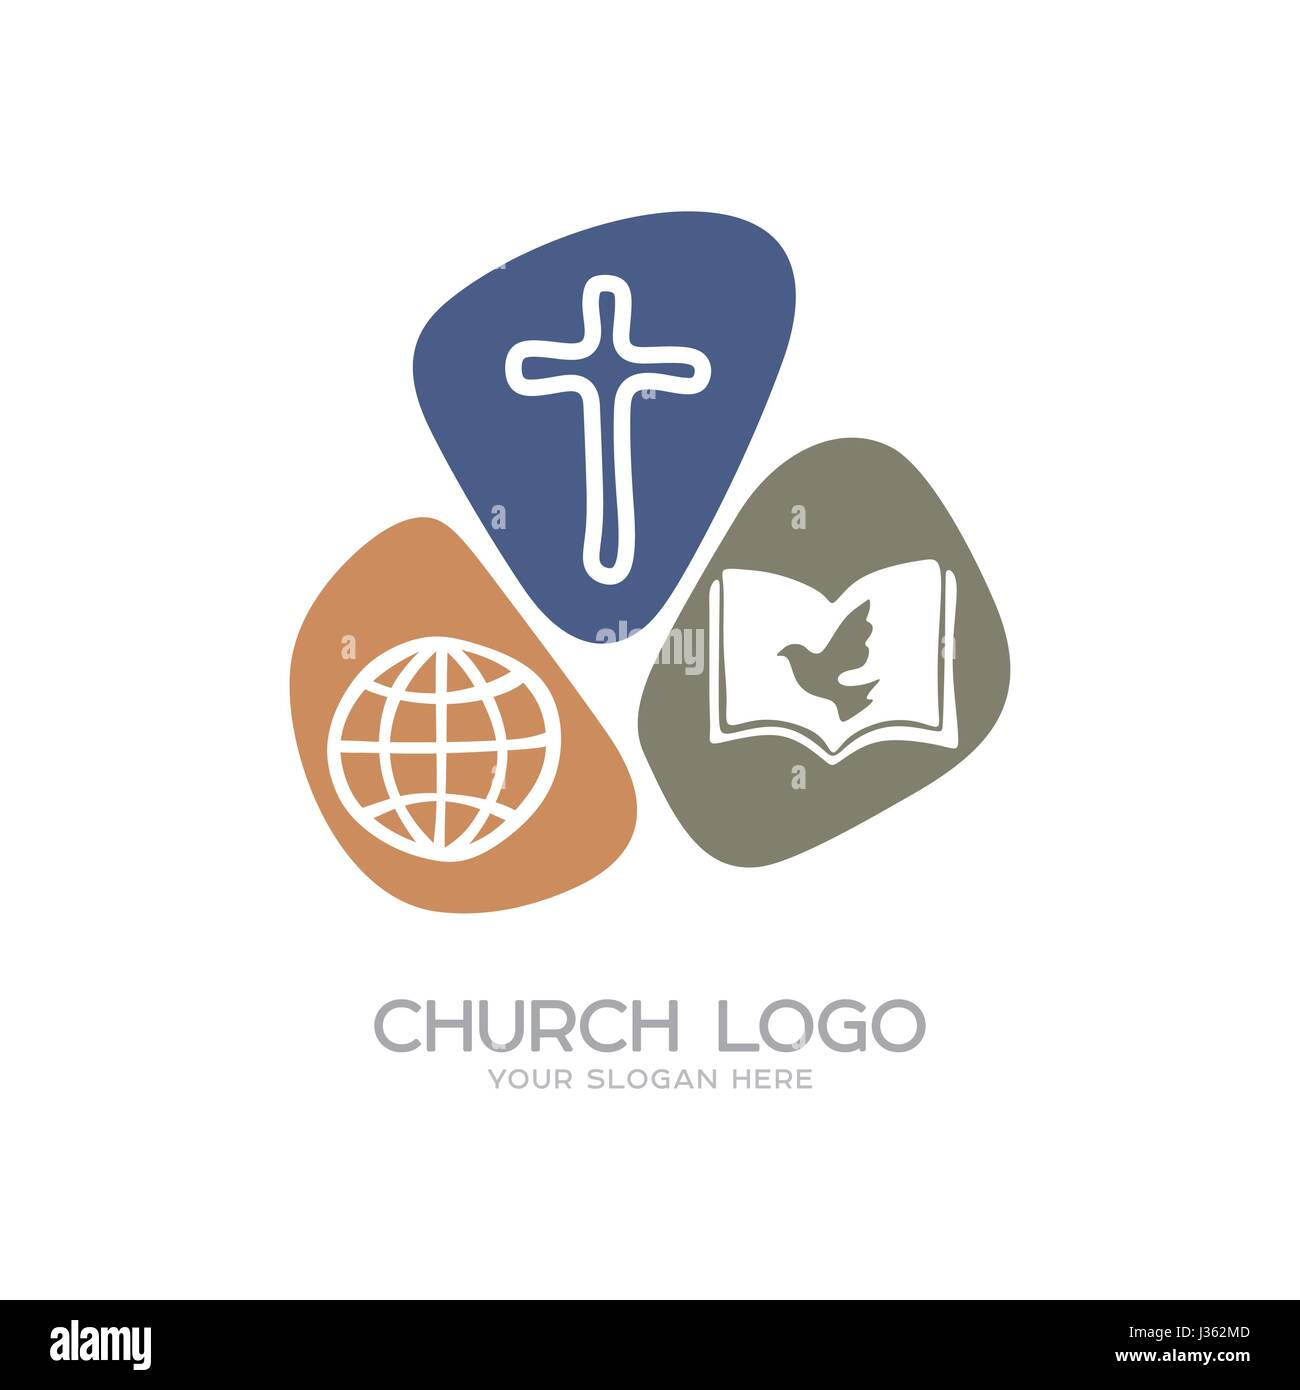 Church logo christian symbols the cross of jesus christ the globe church logo christian symbols the cross of jesus christ the globe and the holy bible hand drawn buycottarizona Image collections